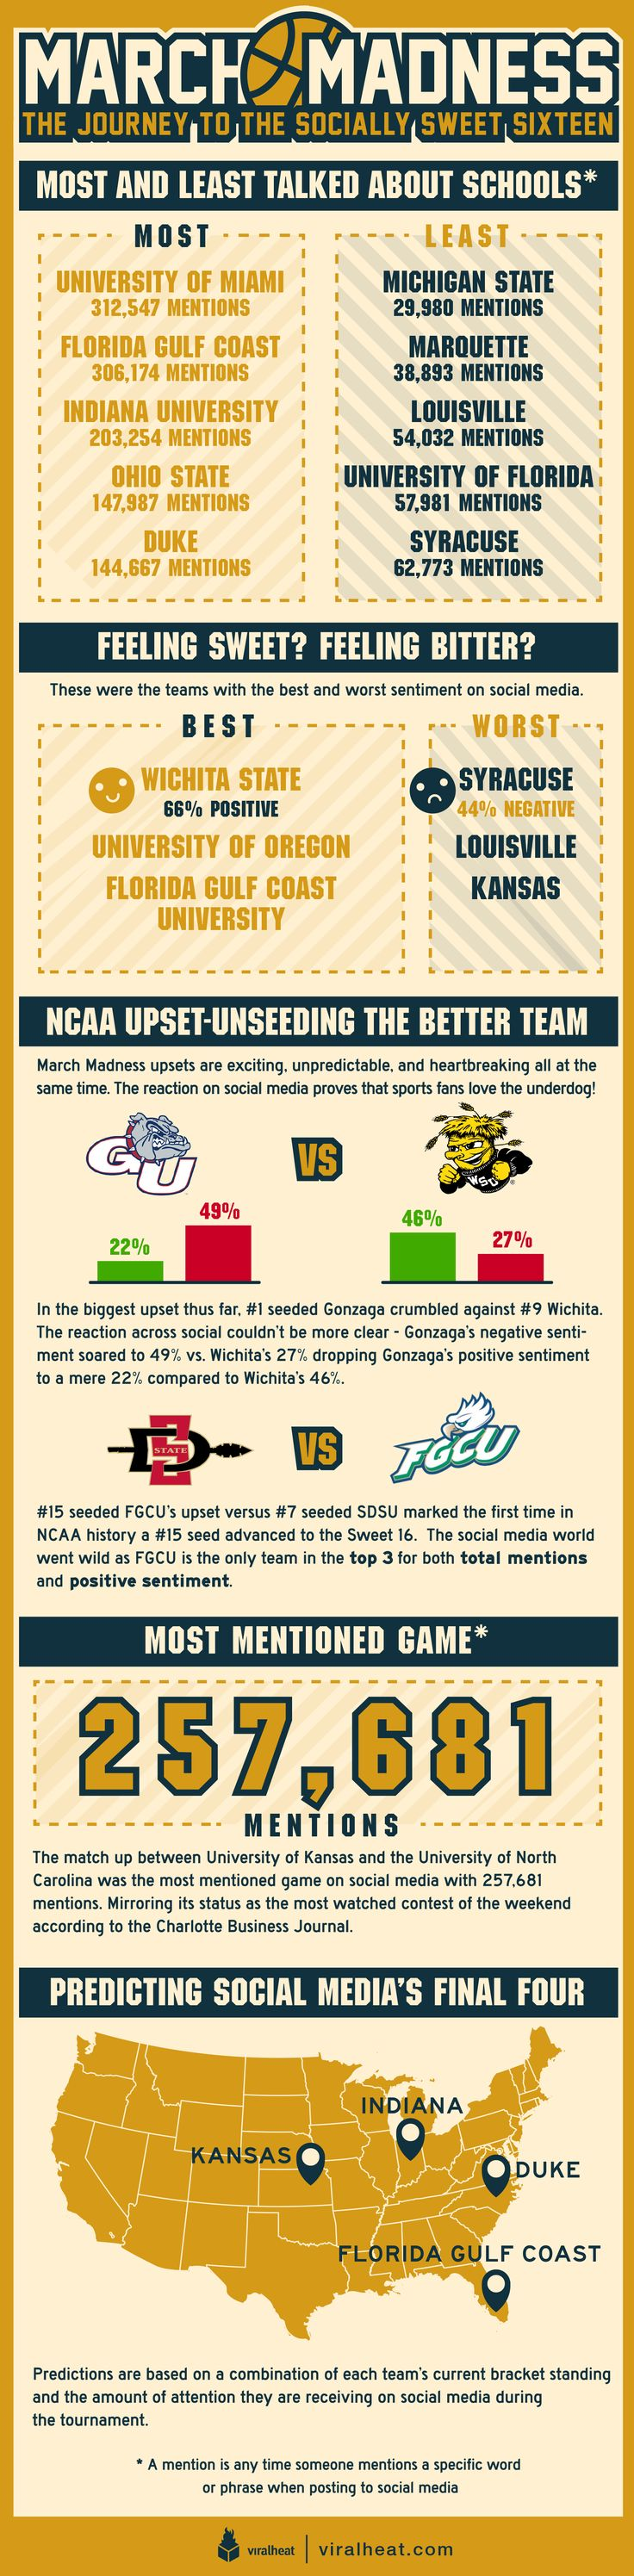 March Madness School Ranking On Social Media [Infographic]